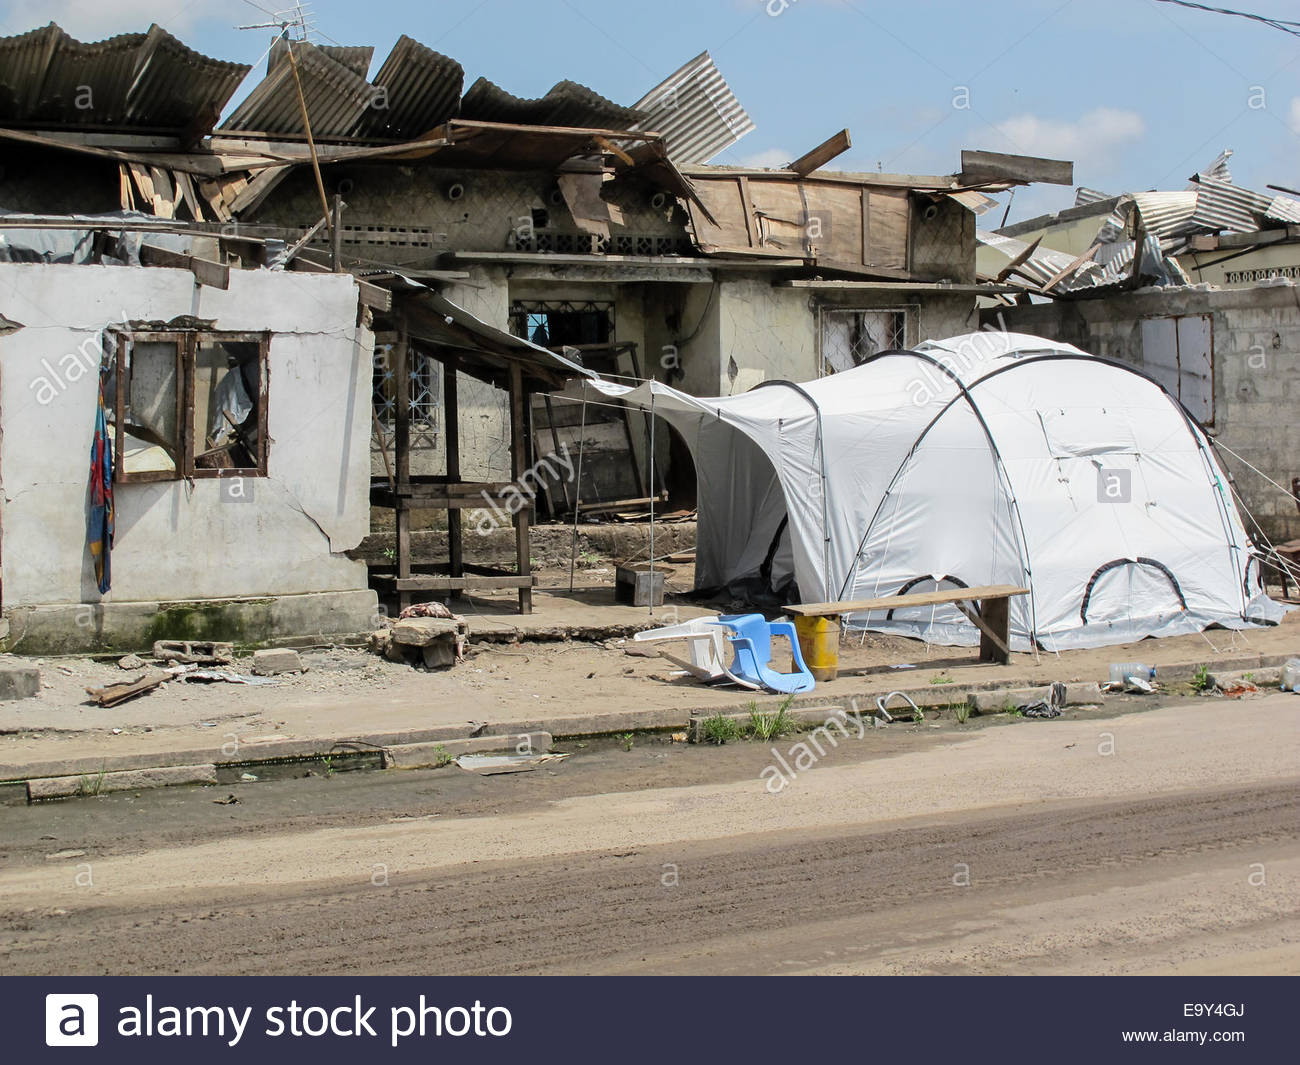 A disaster relief tent erected next to a badly damaged tent in Brazzaville. Congo after an explosion made 14000 homeless & A disaster relief tent erected next to a badly damaged tent in ...